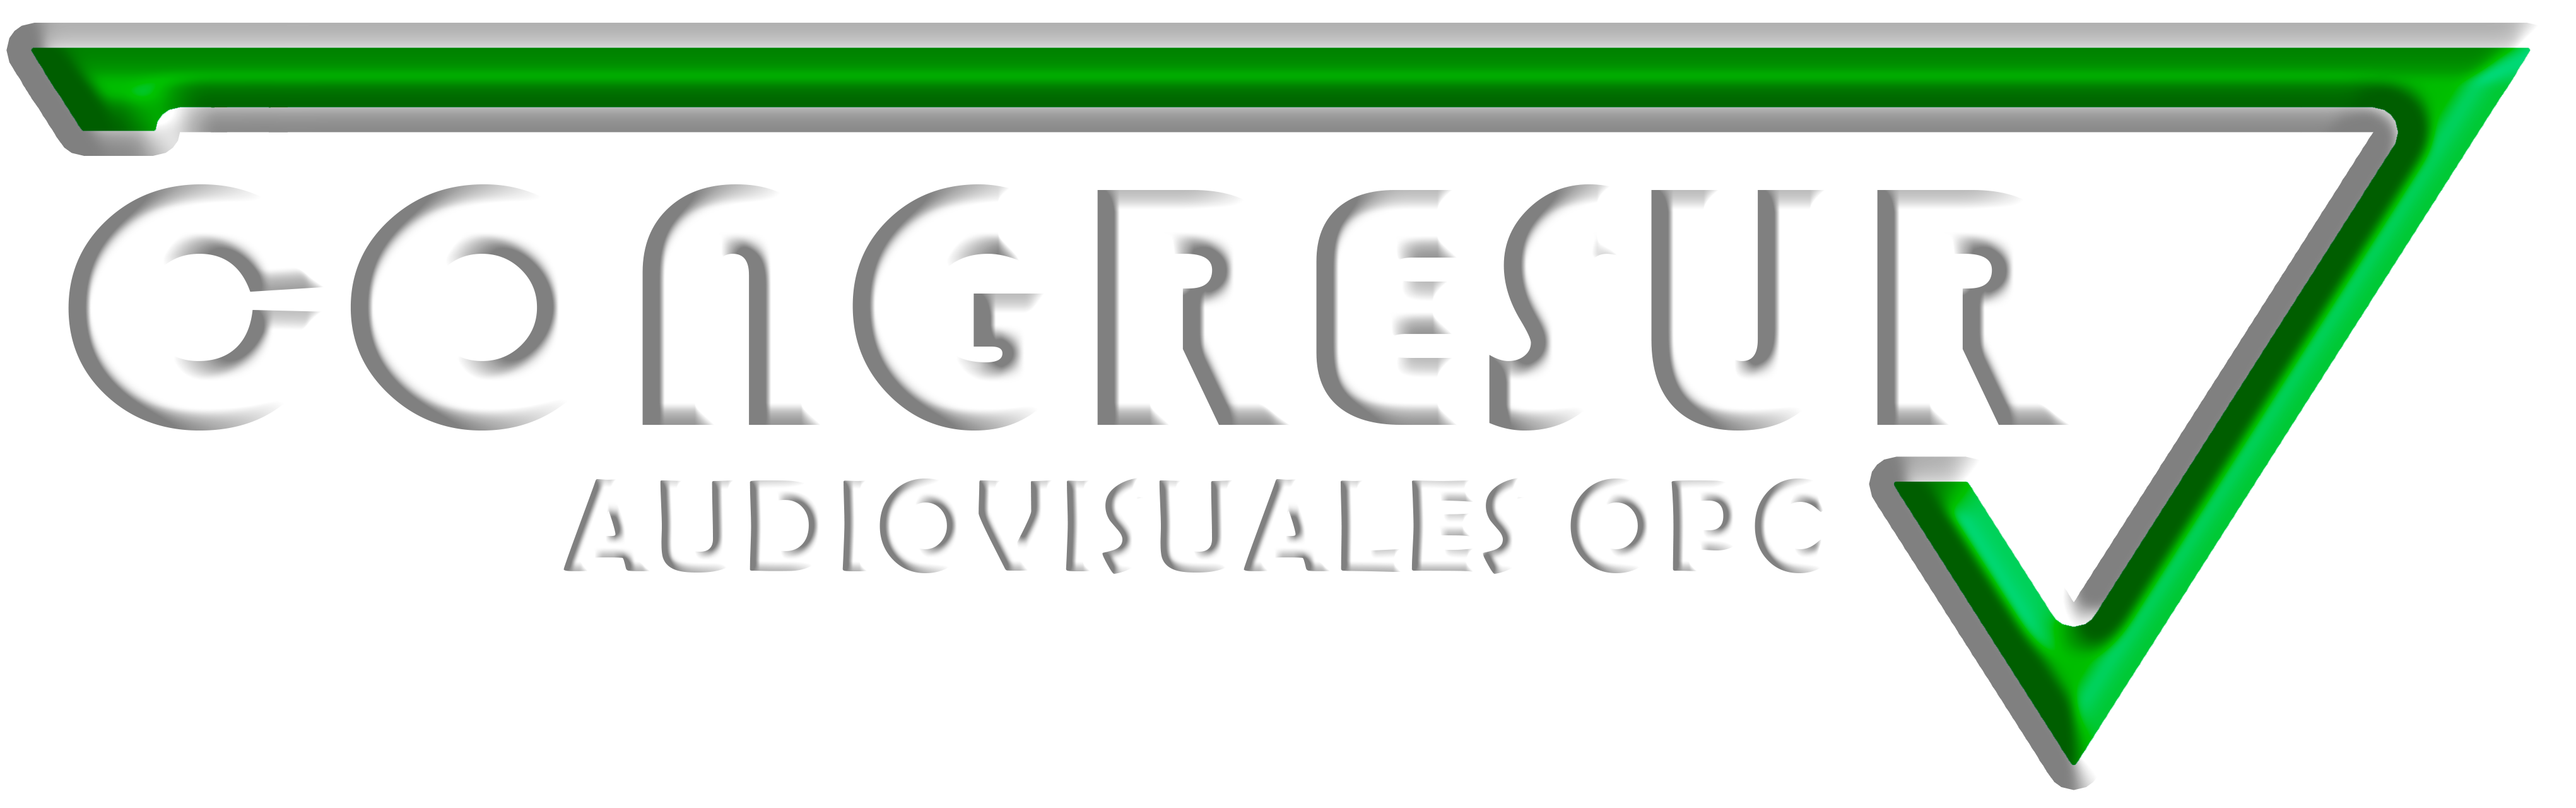 Congresur Audiovisuales